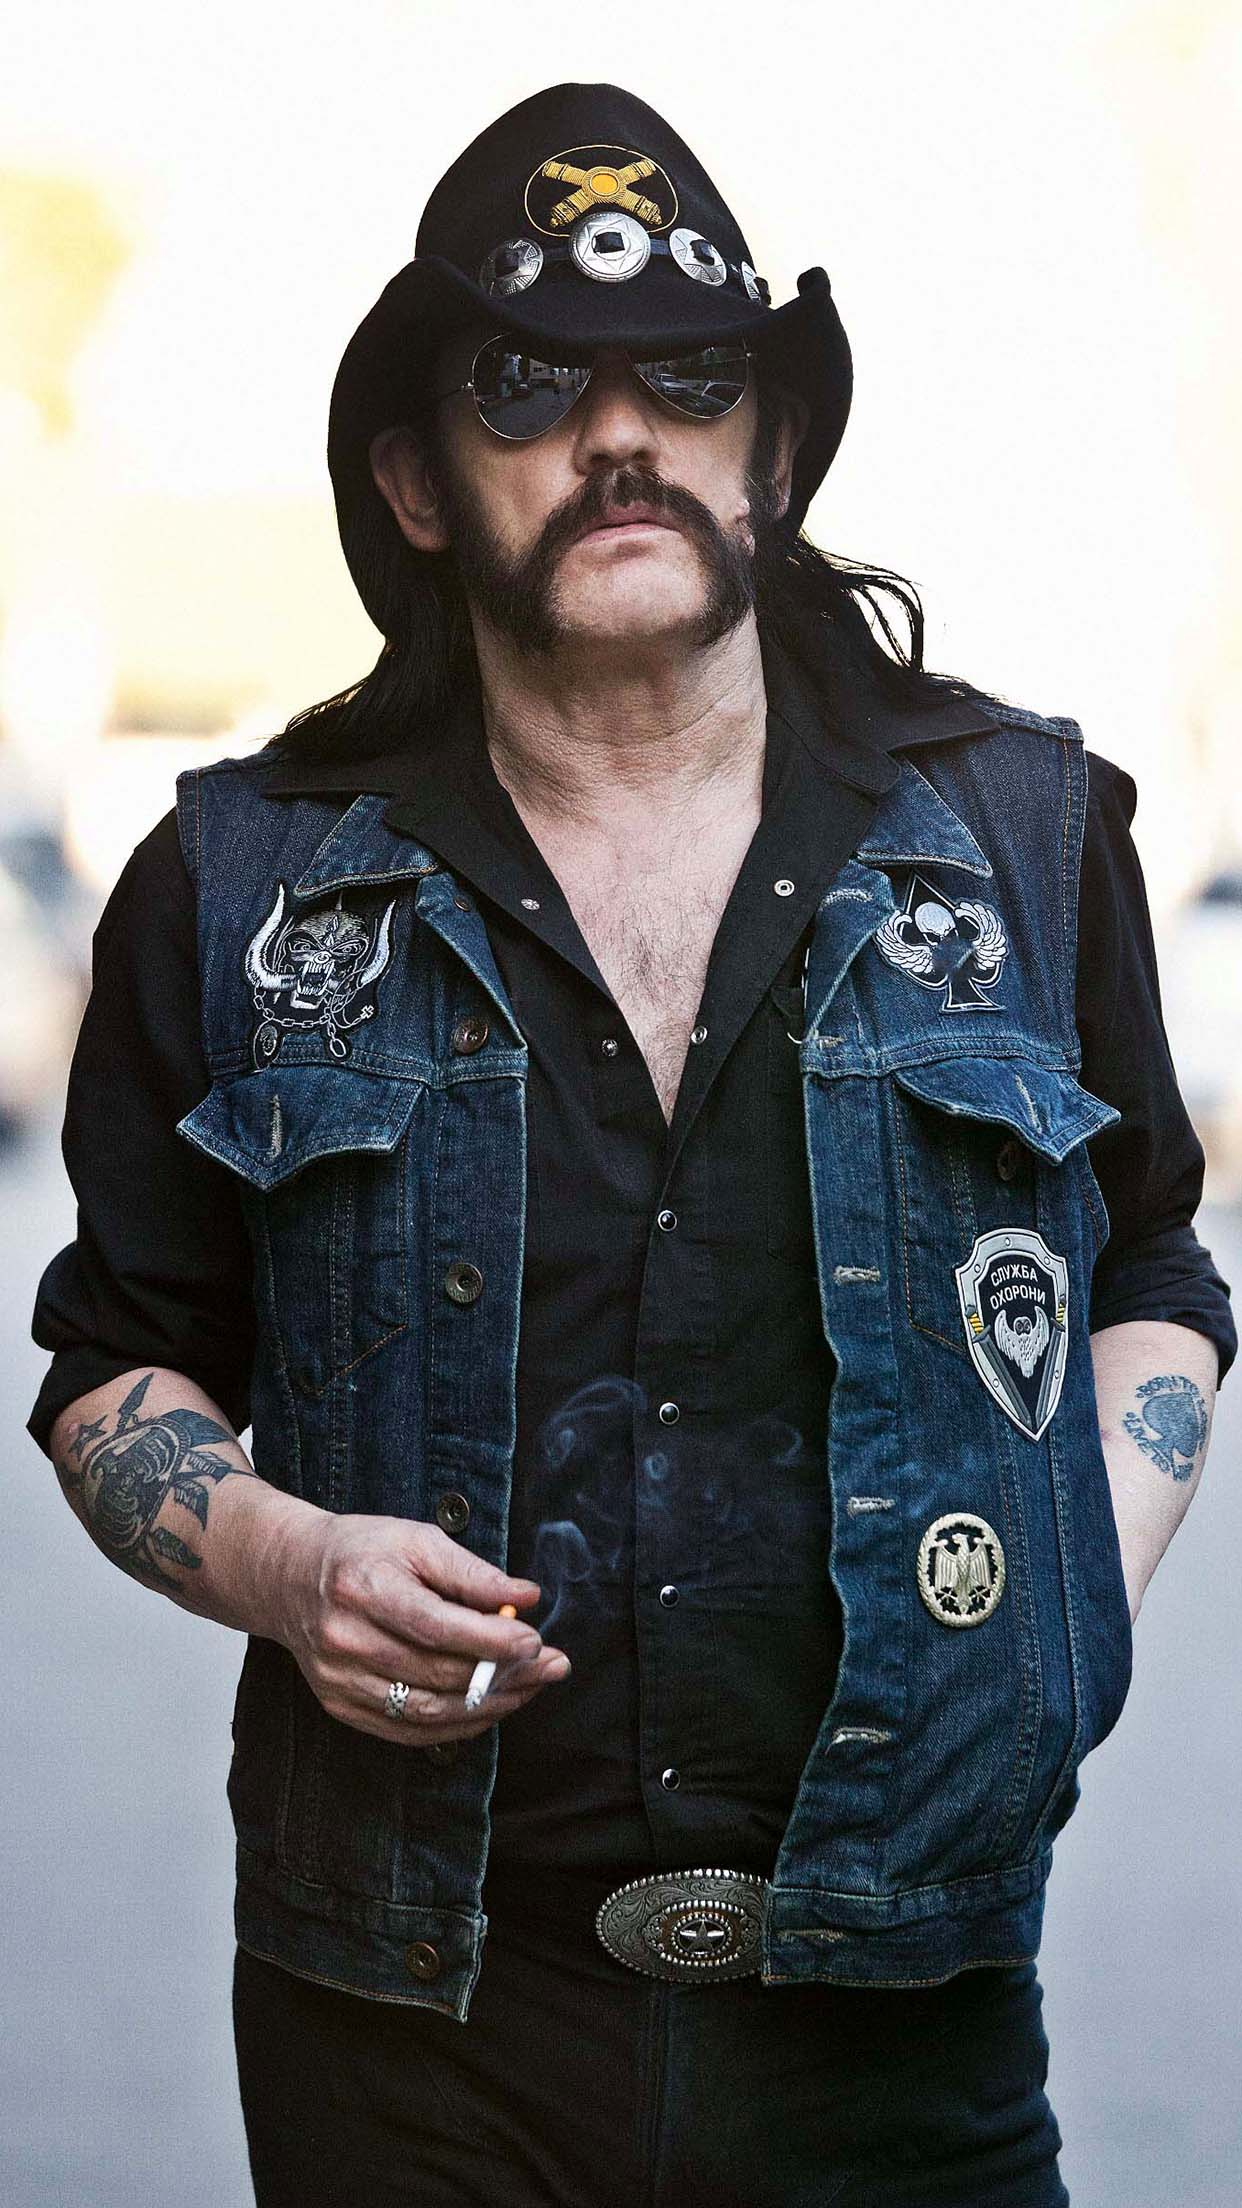 Motörhead Lemmy Kilmister 3Wallpapers iPhone Parallax Lemmy Kilmister